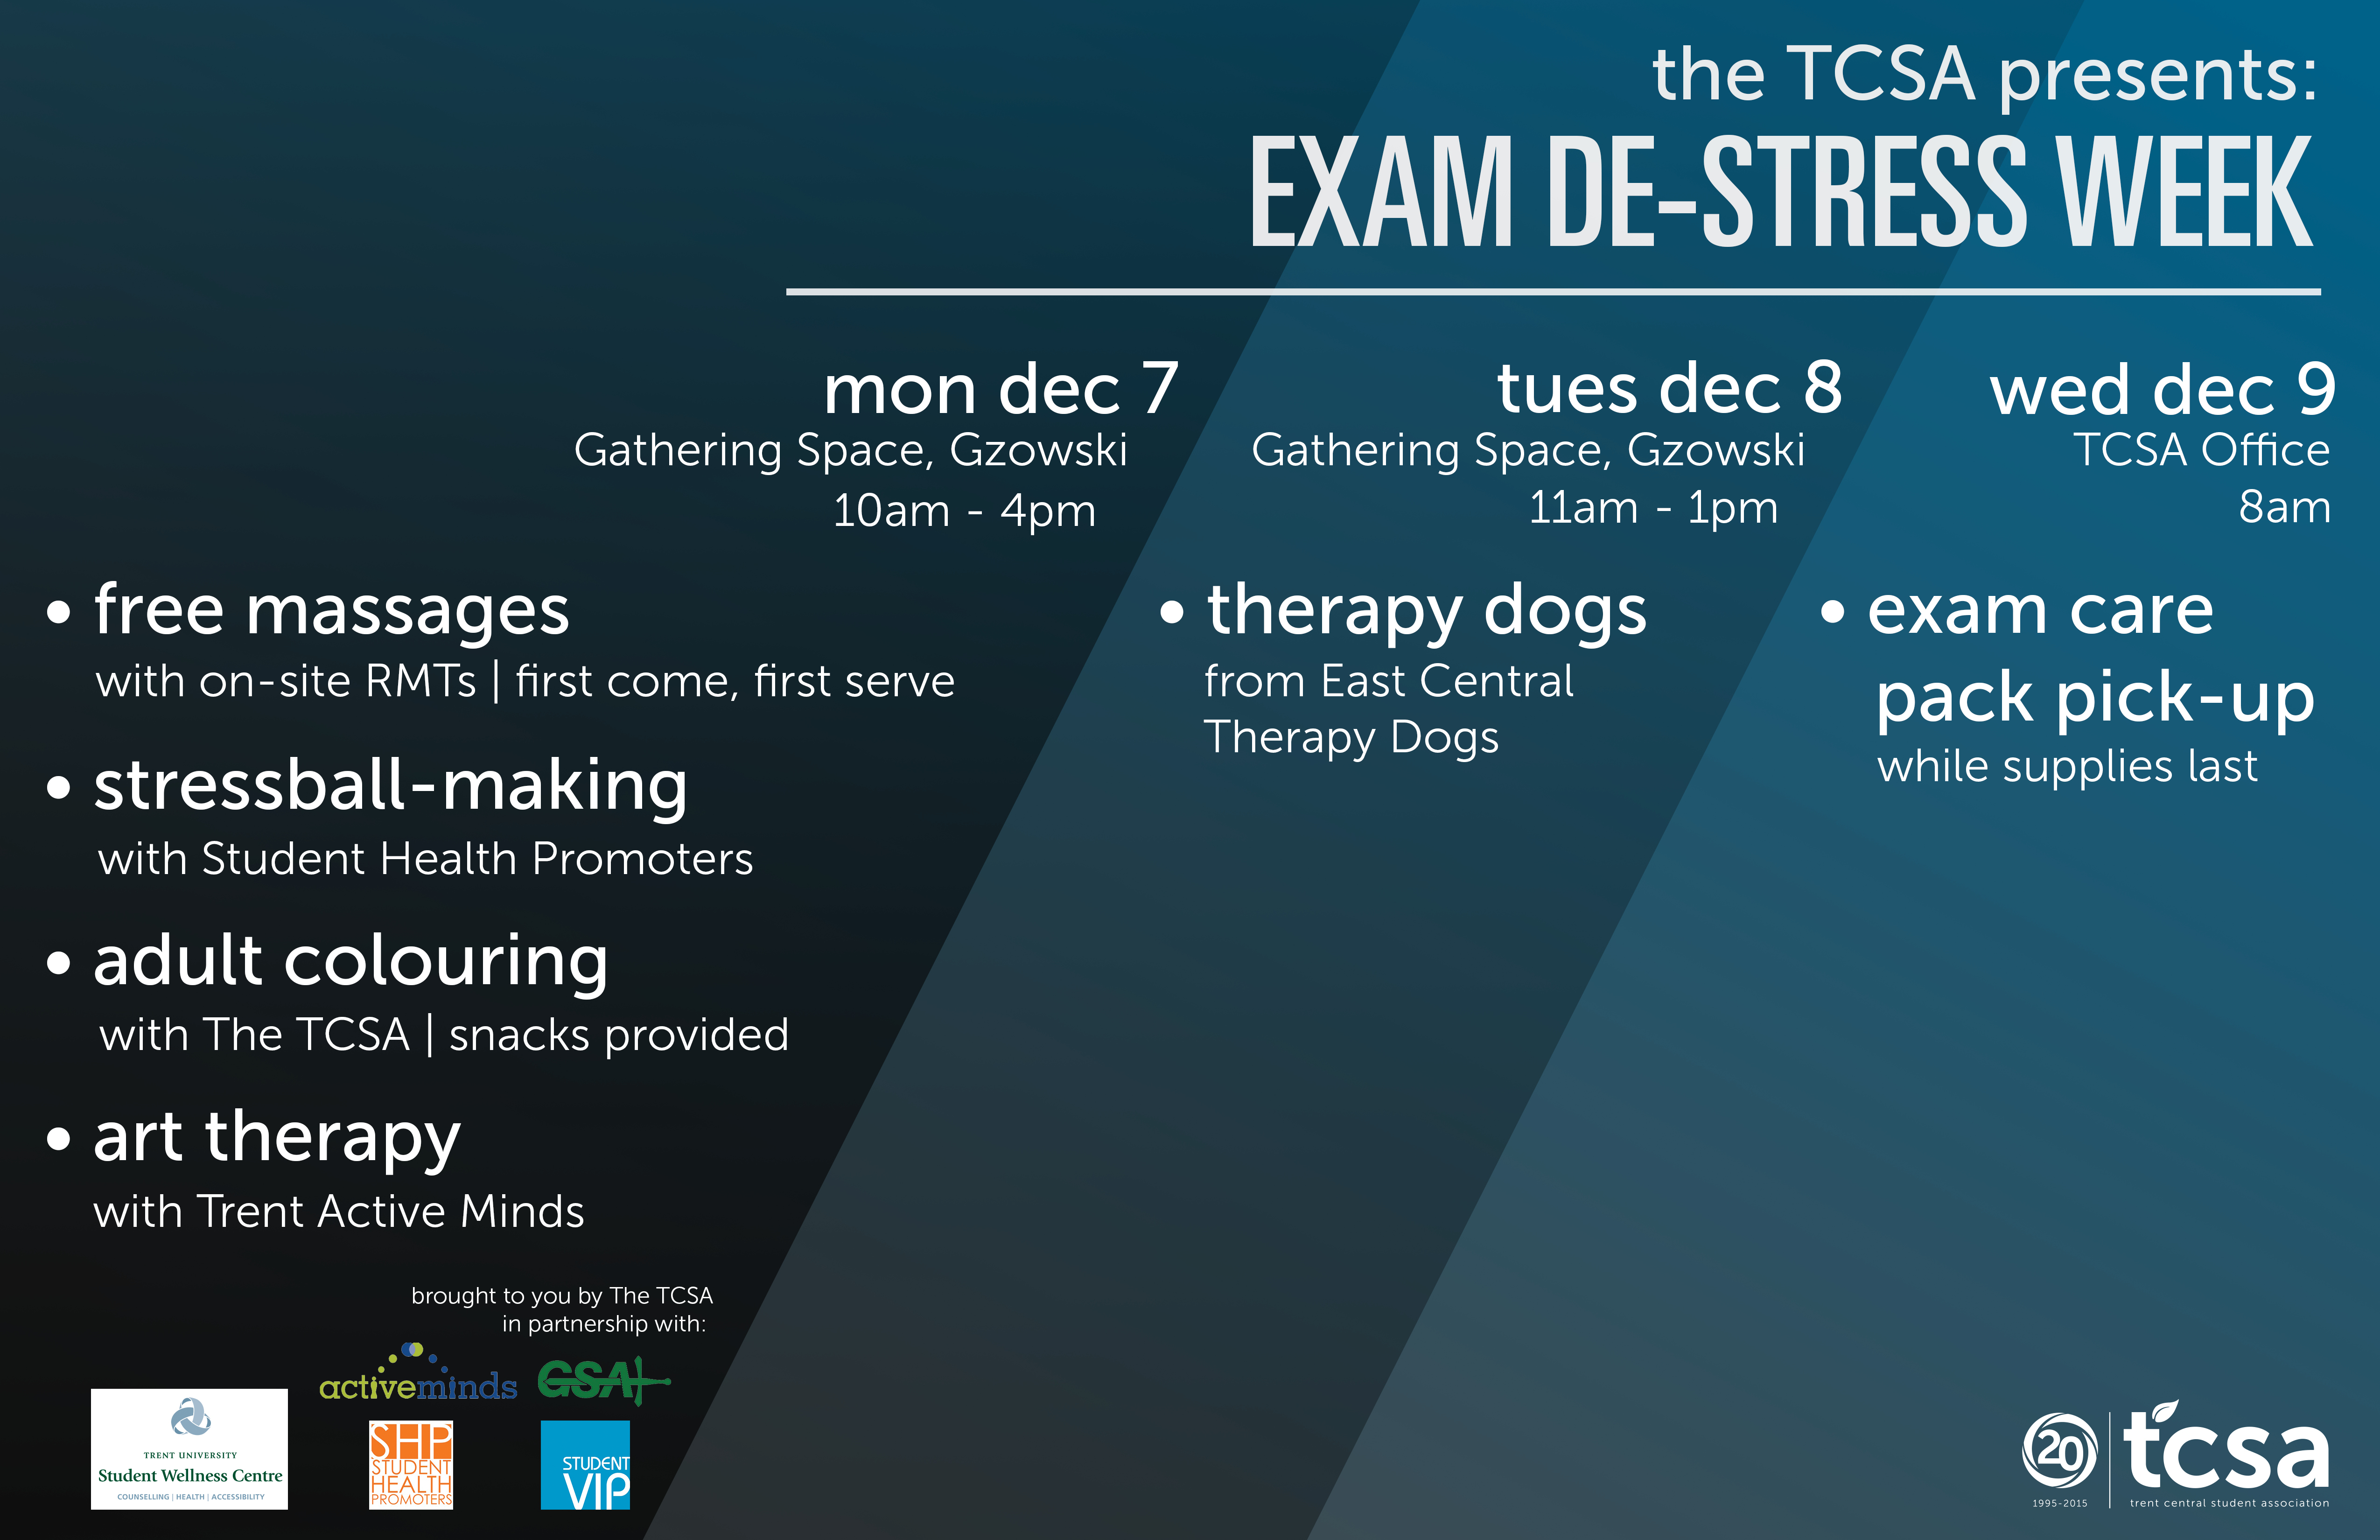 A message of support from the TCSA this exam season